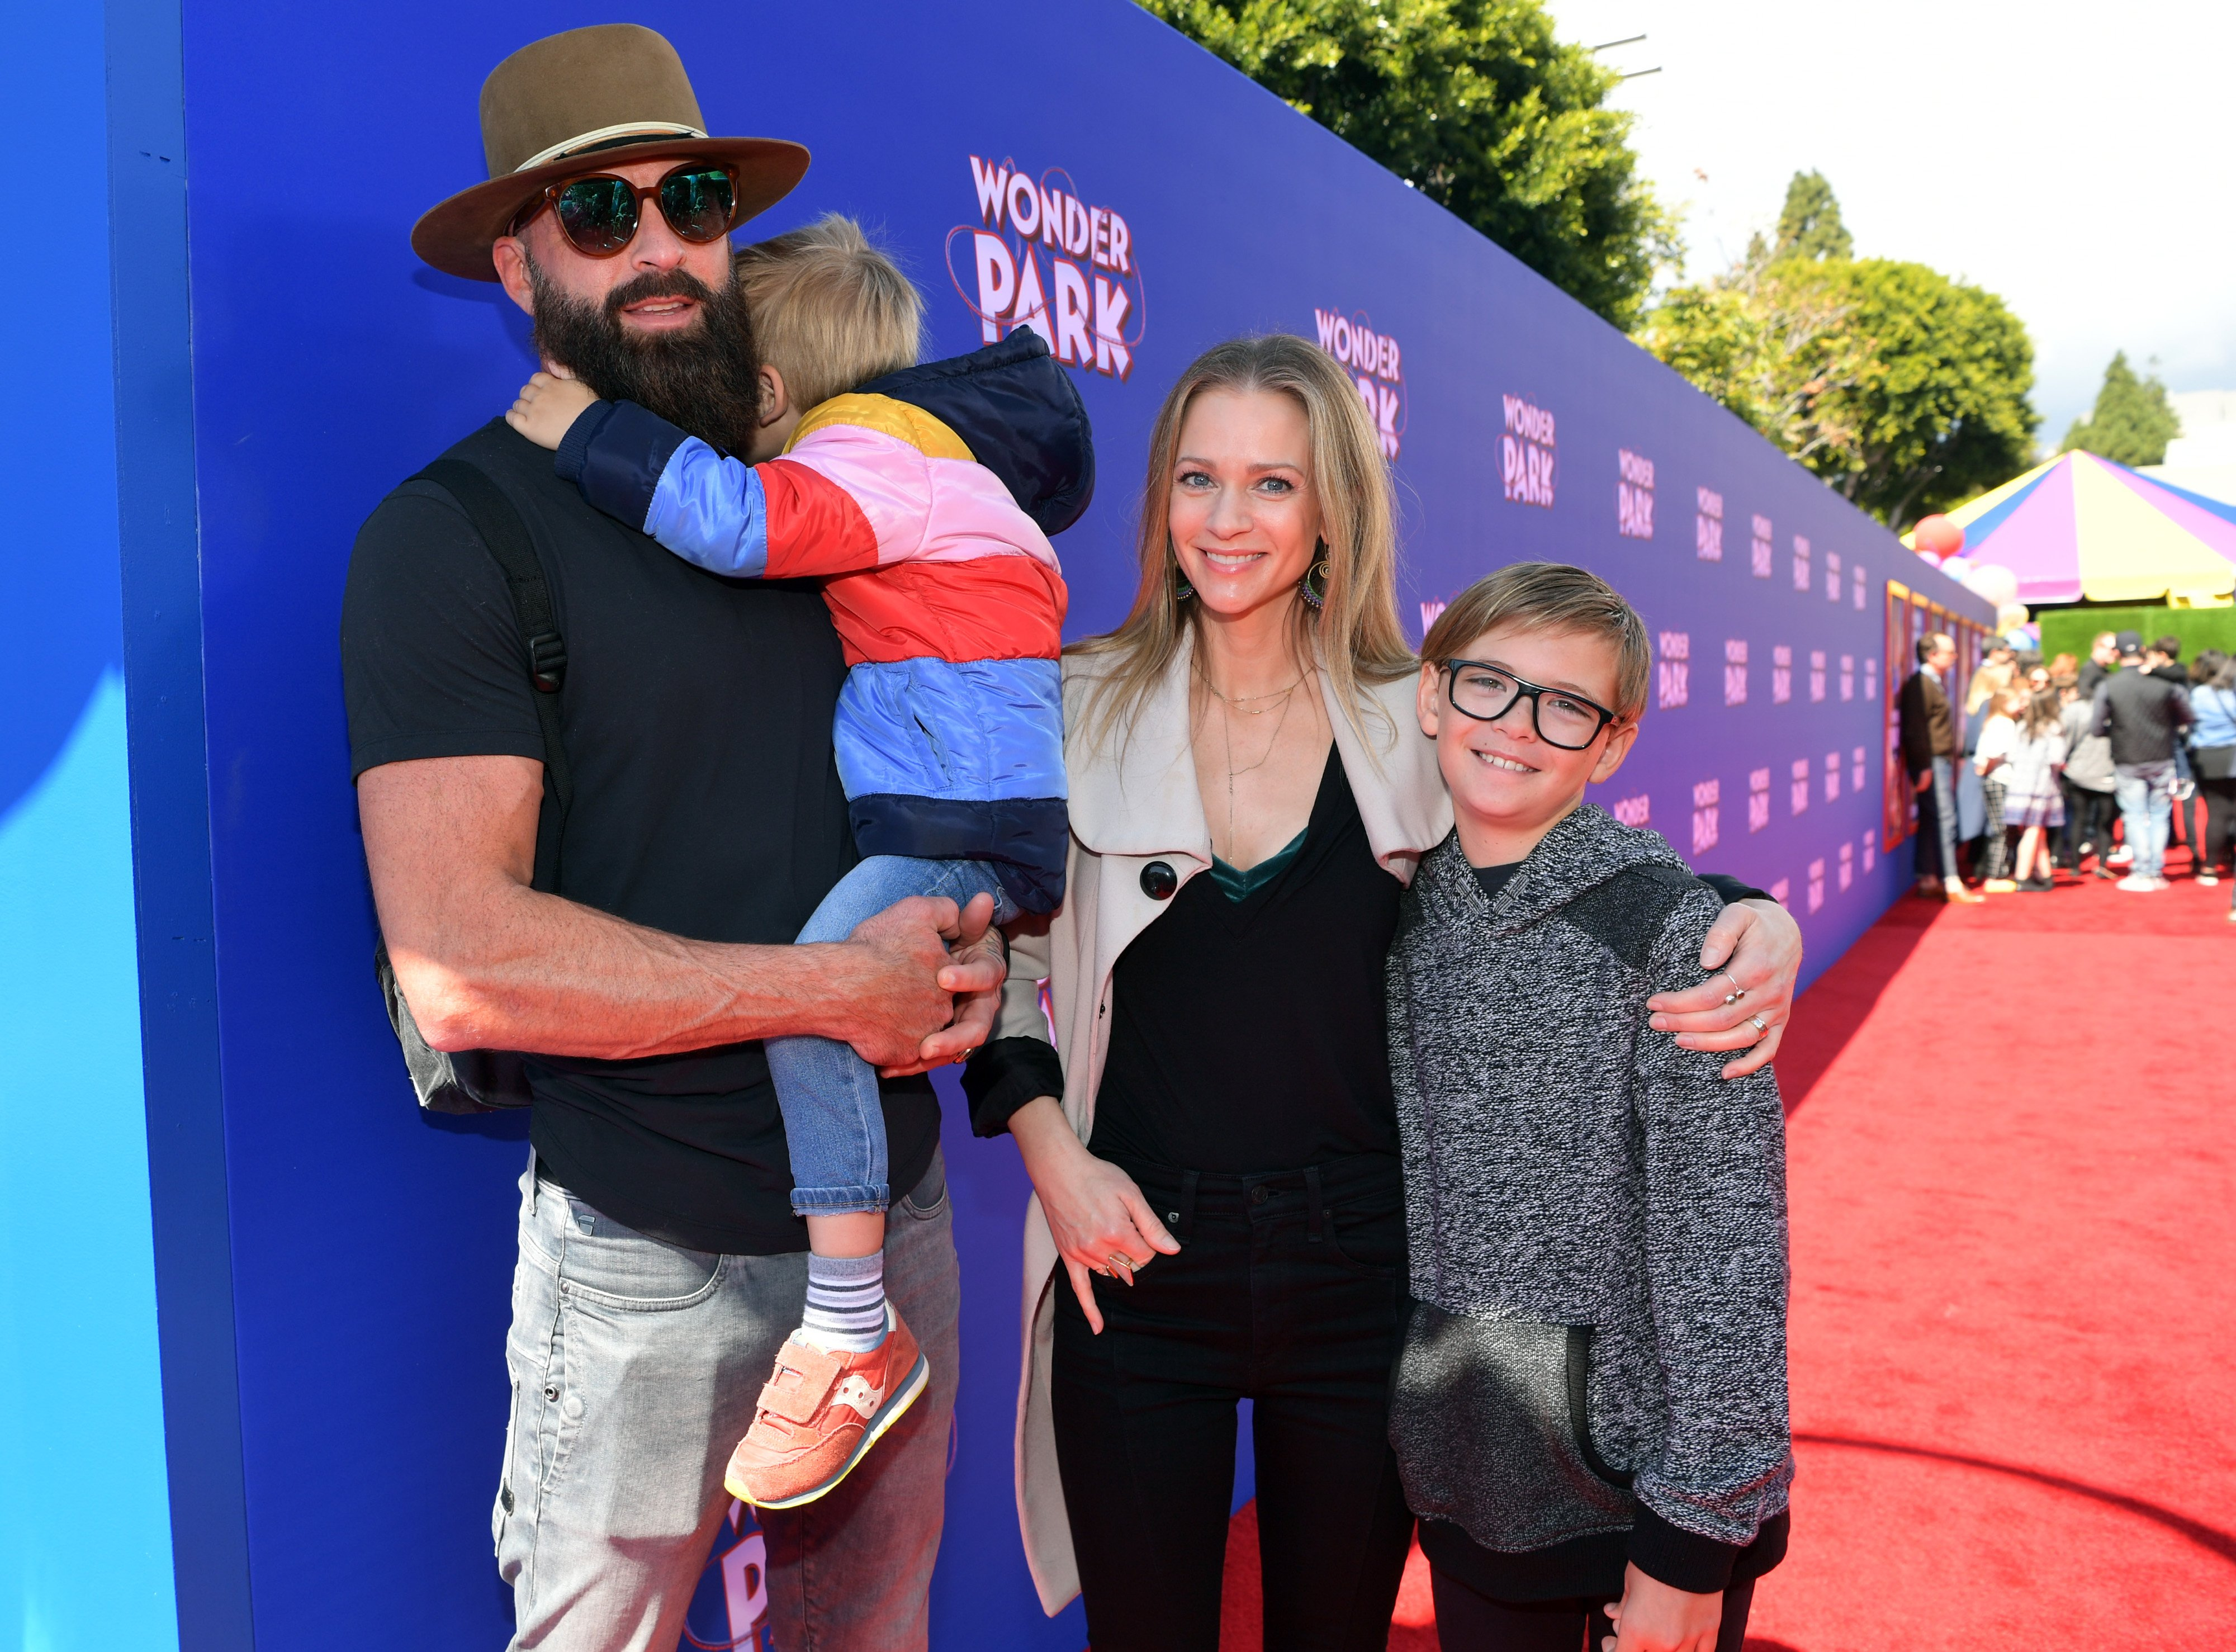 """Nathan Andersen and A.J. Cook with their children Phoenix Sky Andersen and Mekhai Allan Andersen attend the premiere of Paramount Pictures' """"Wonder Park"""" at Regency Bruin Theatre on March 10, 2019 in Los Angeles, California   Photo: Getty Images"""